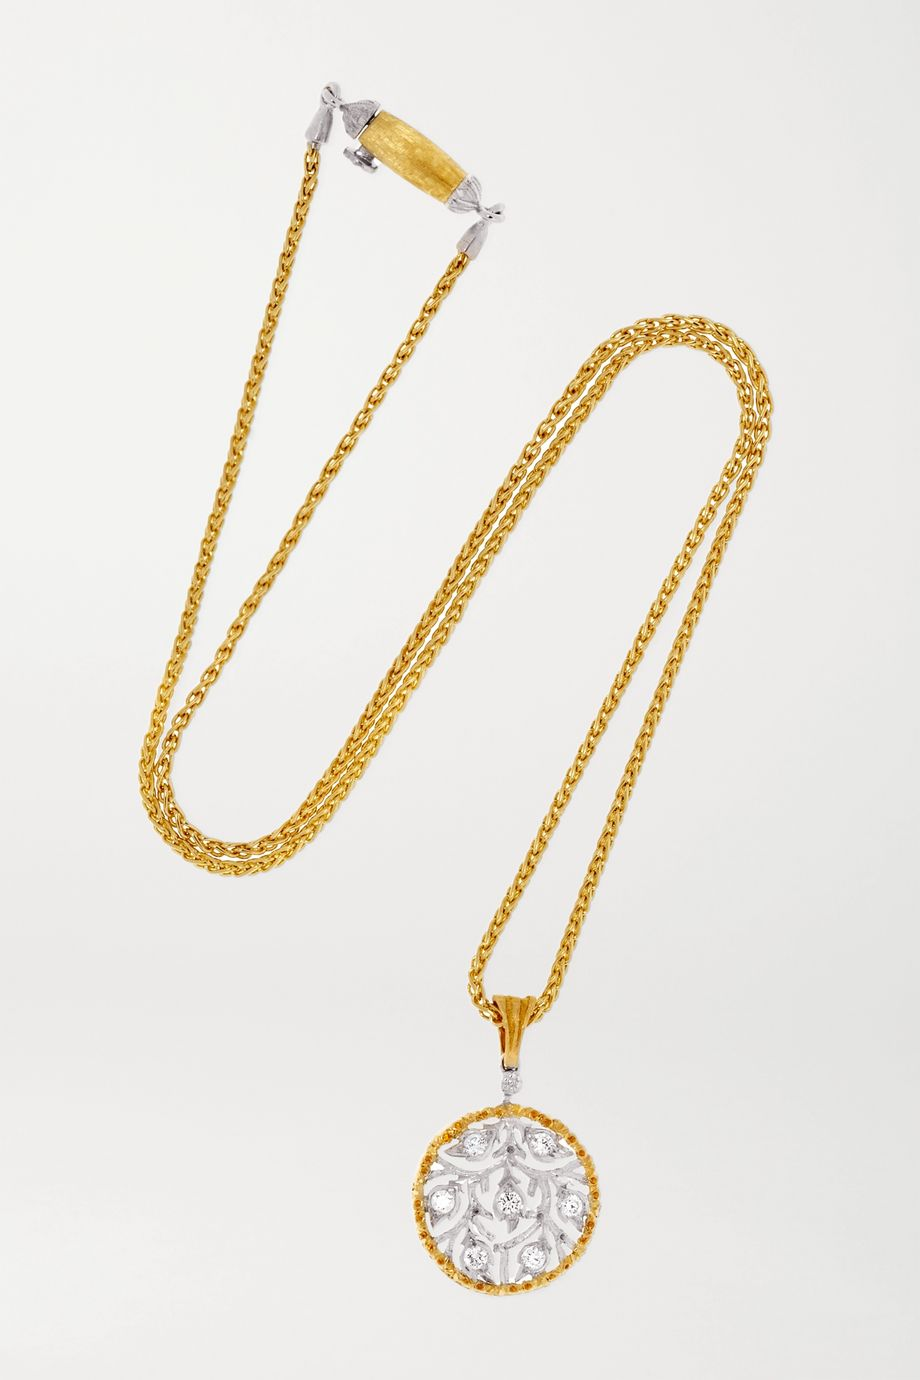 Buccellati Ramage 18-karat yellow and white gold diamond necklace